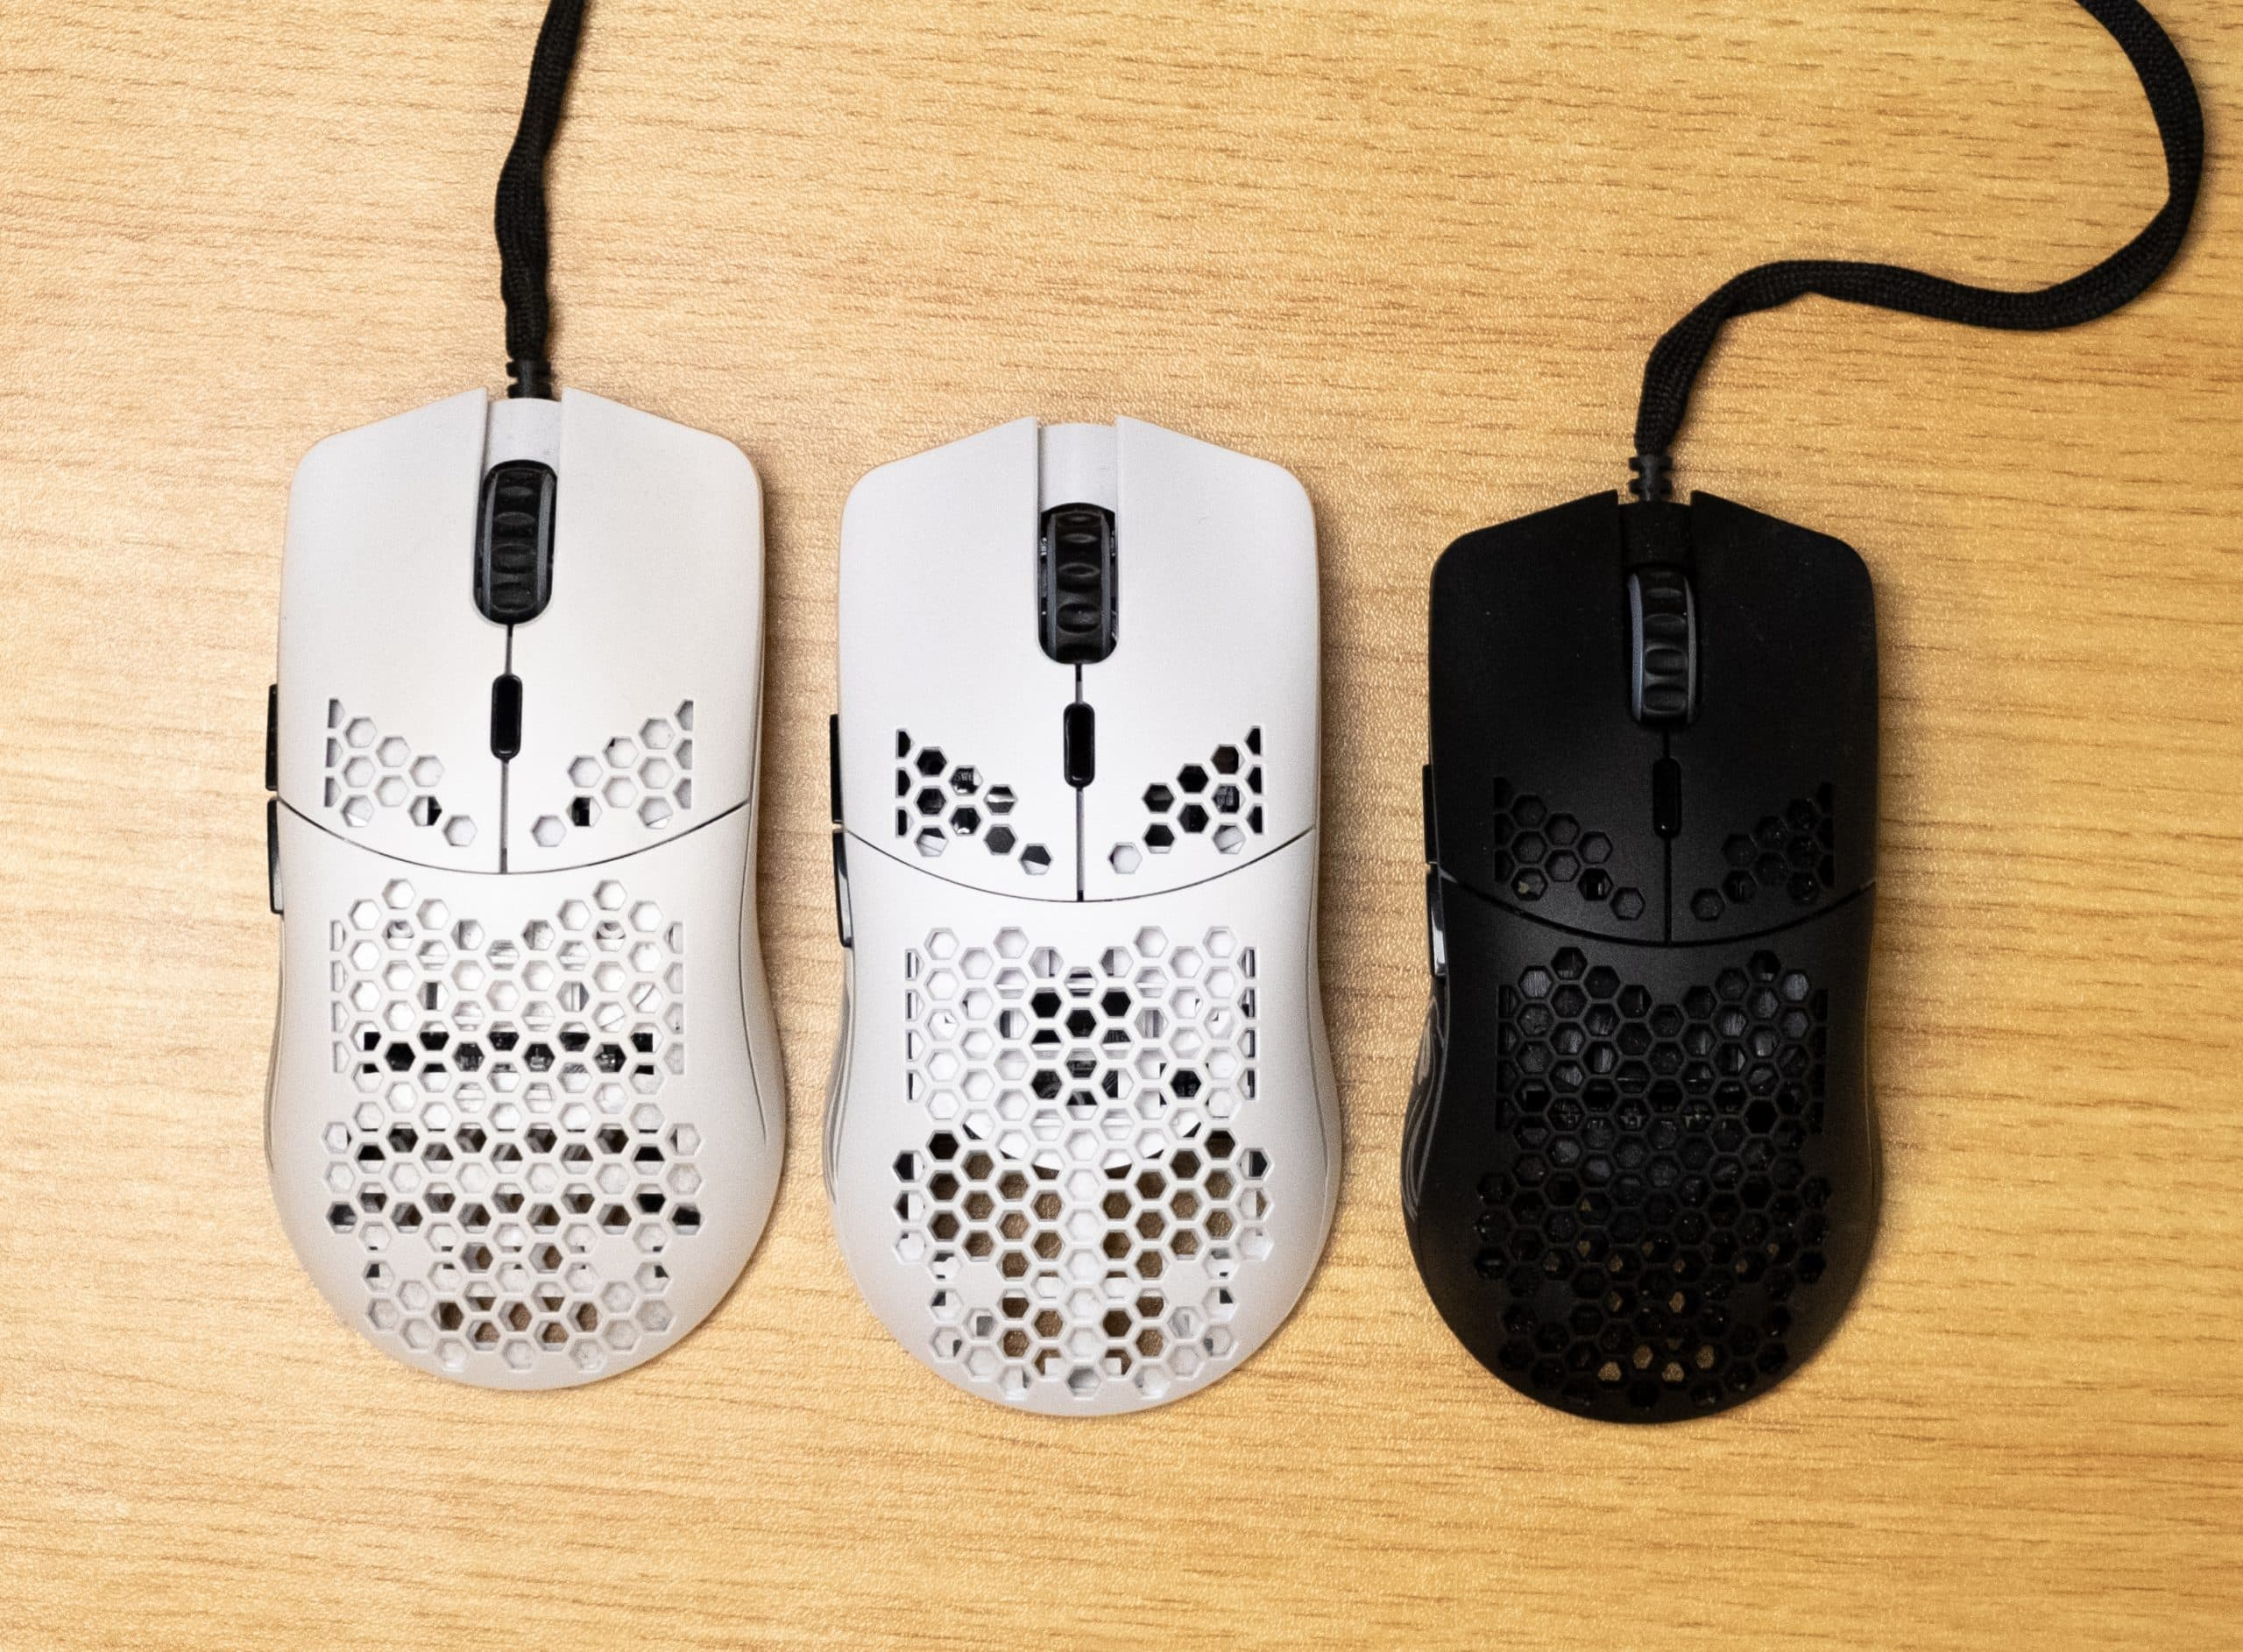 Glorious Model O Wireless - Compared Top